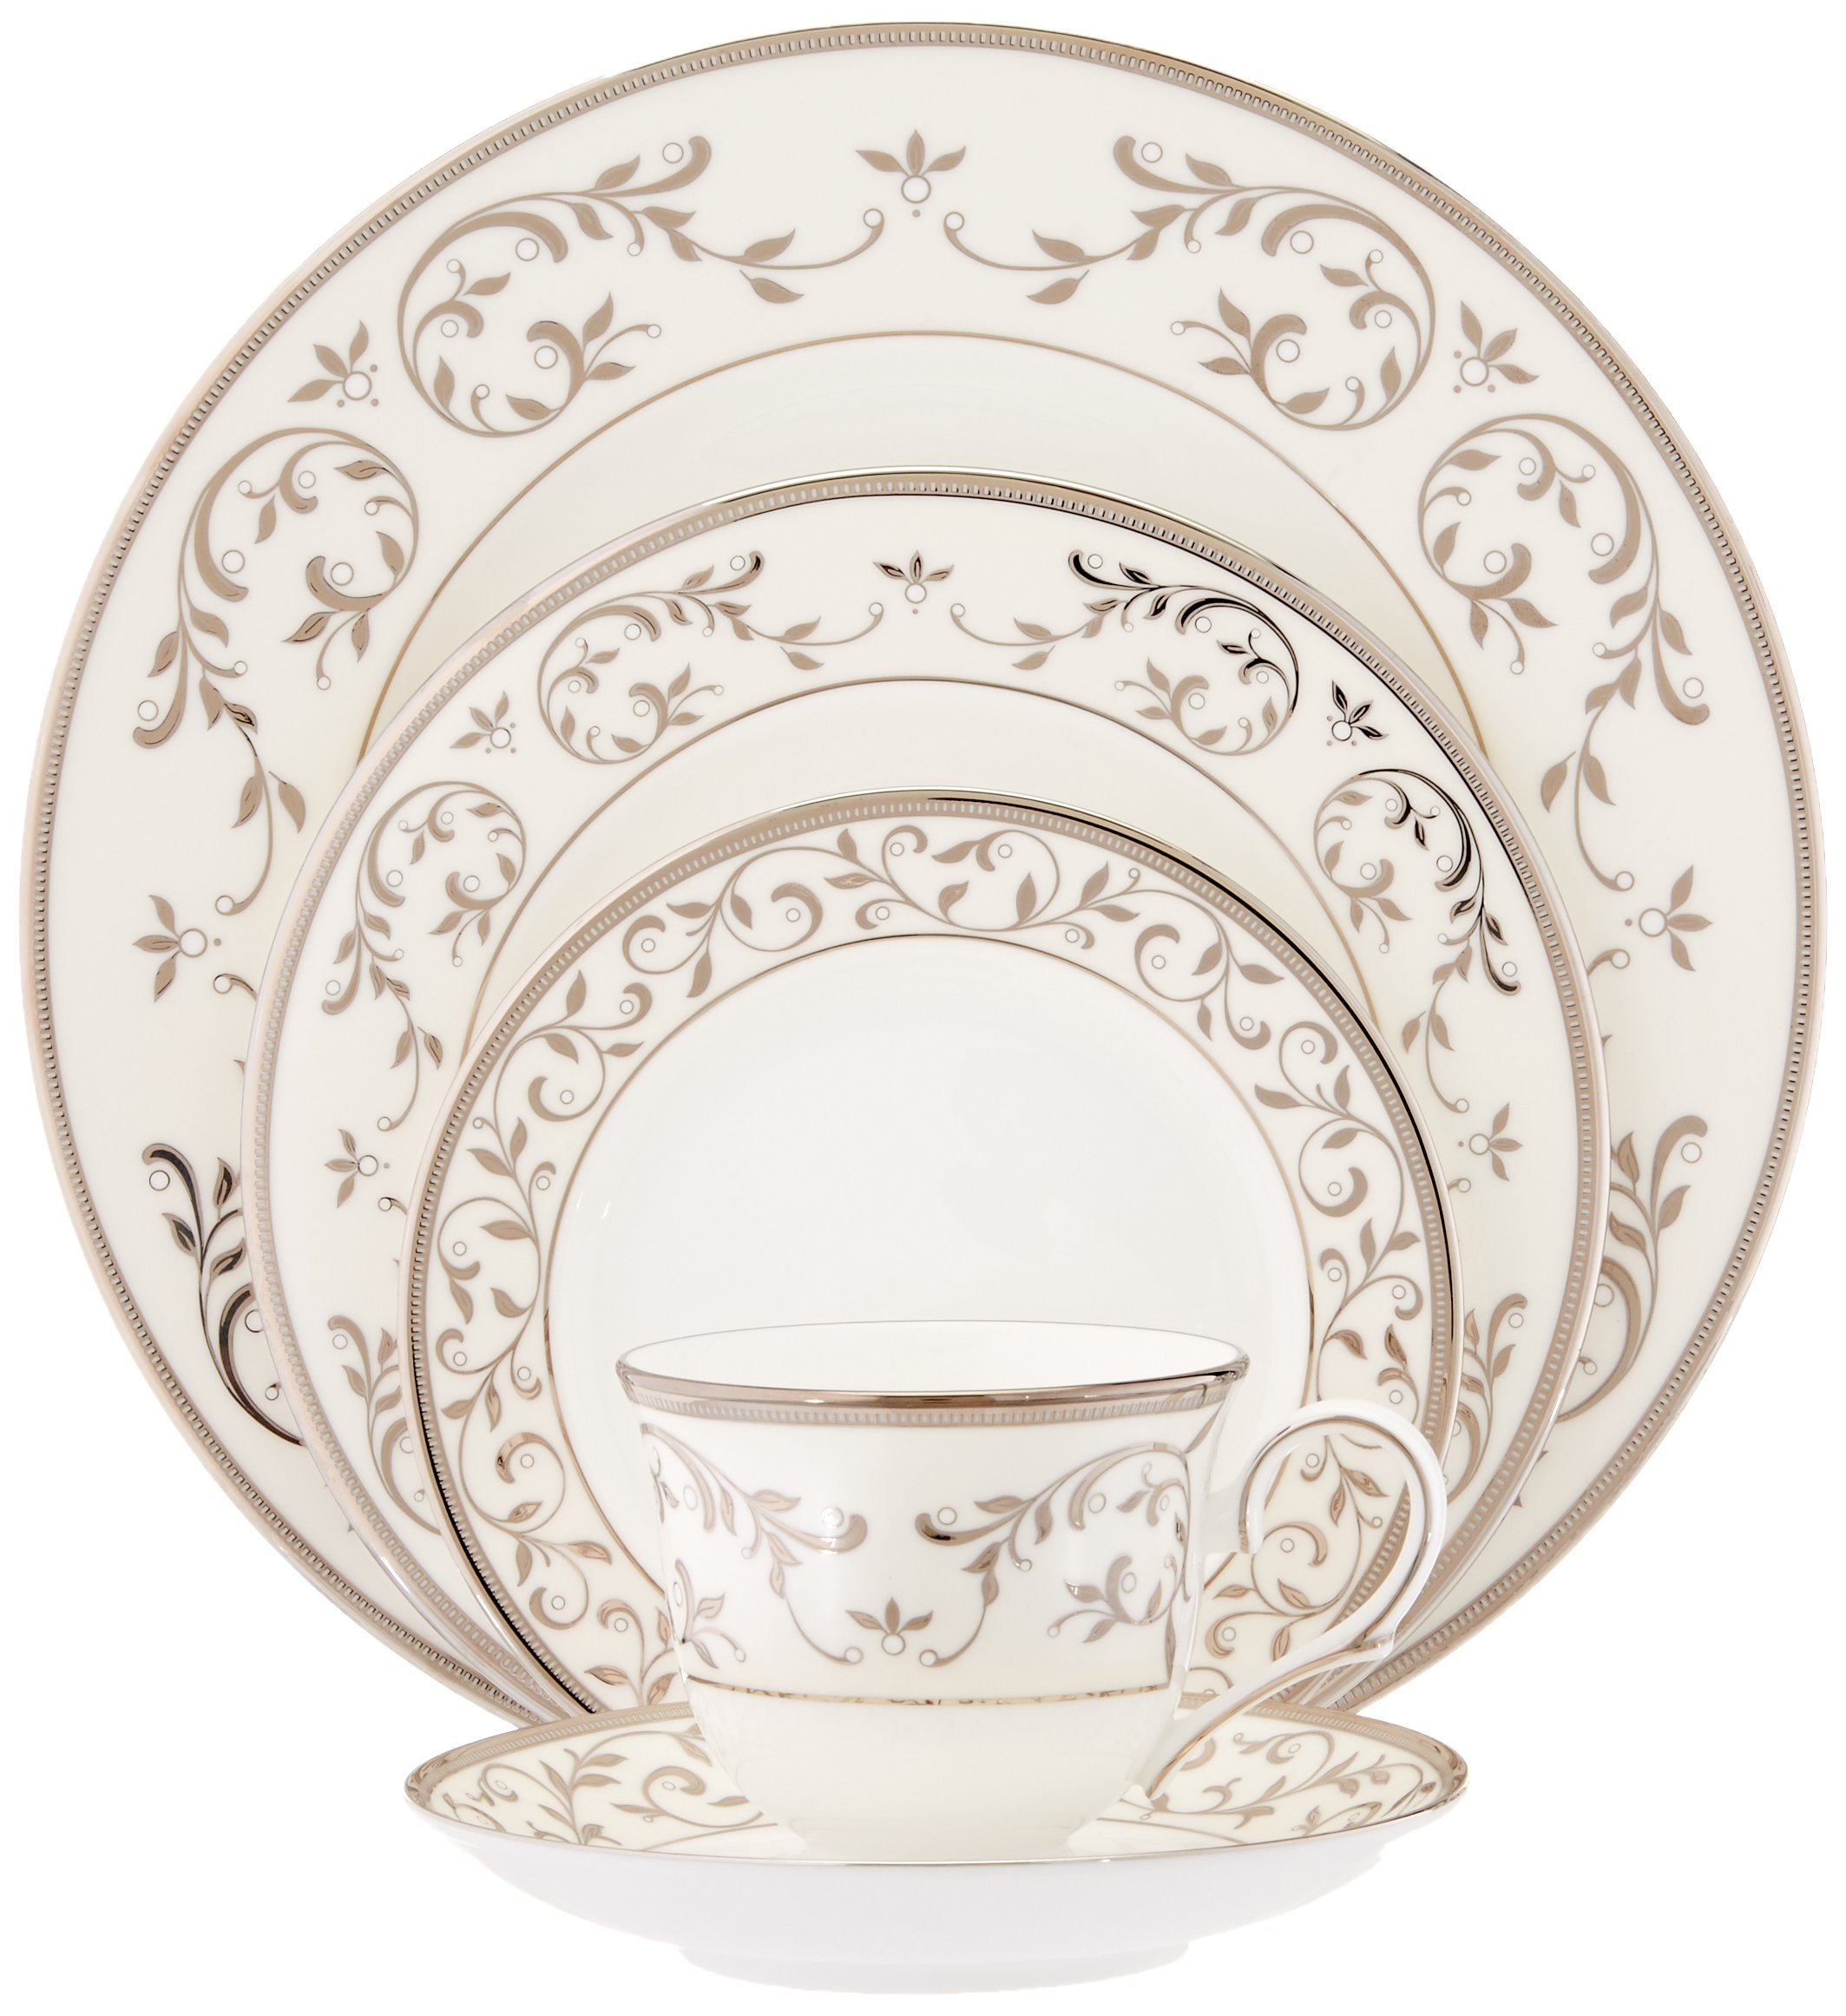 Lenox Opal Innocence Silver 5-Piece Place Setting, White - 834221 - Crafted of Lenox bone china Platinum and enamel pearl accents Dishwasher safe - kitchen-tabletop, kitchen-dining-room, dinnerware-sets - 81oa9wntCrL -